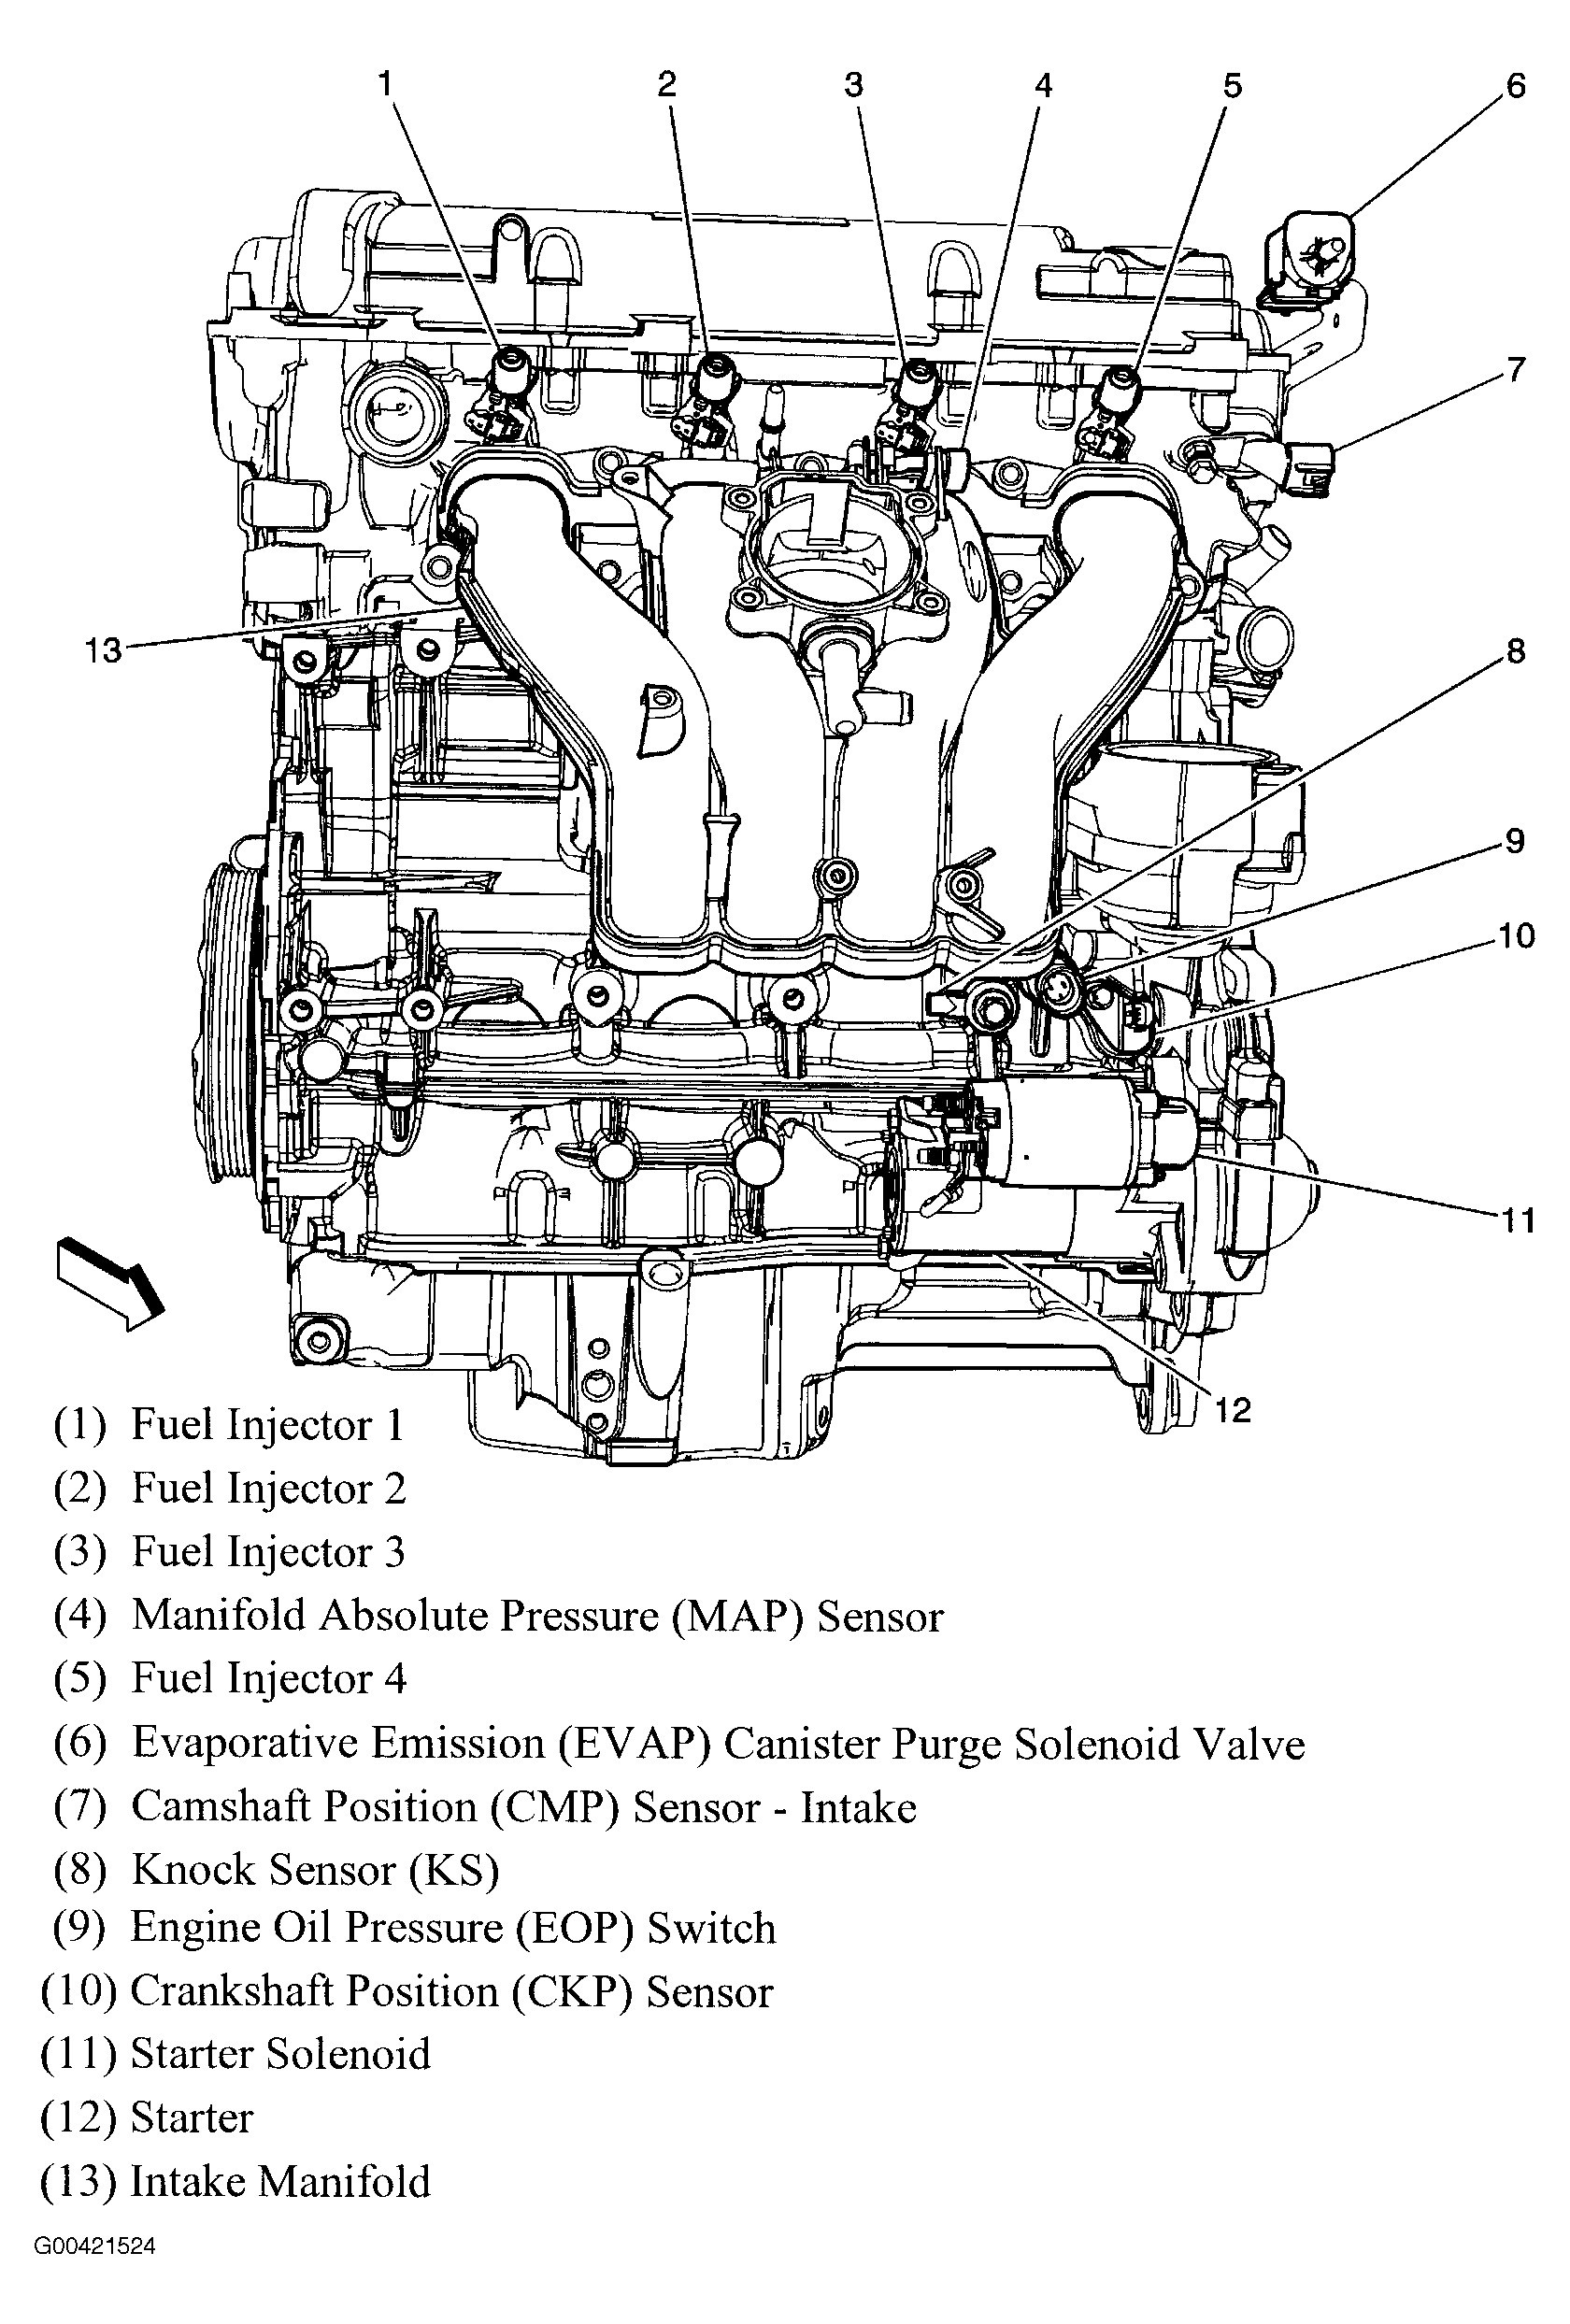 hight resolution of 6 cylinder engine diagram wiring diagram blog inline 6 cylinder engine diagram 4 cylinder 2 4